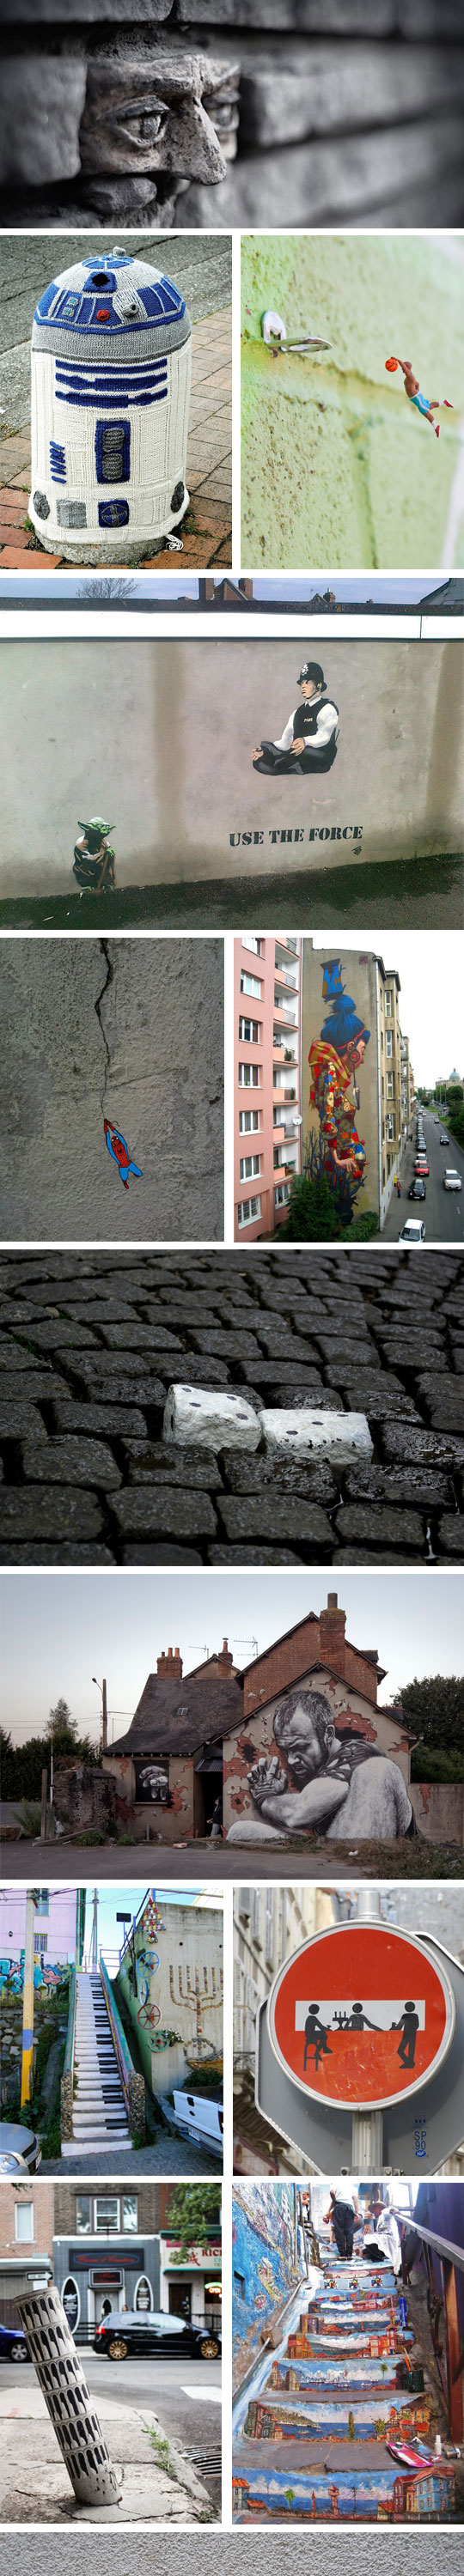 artcool-street-art-painting-graffiti